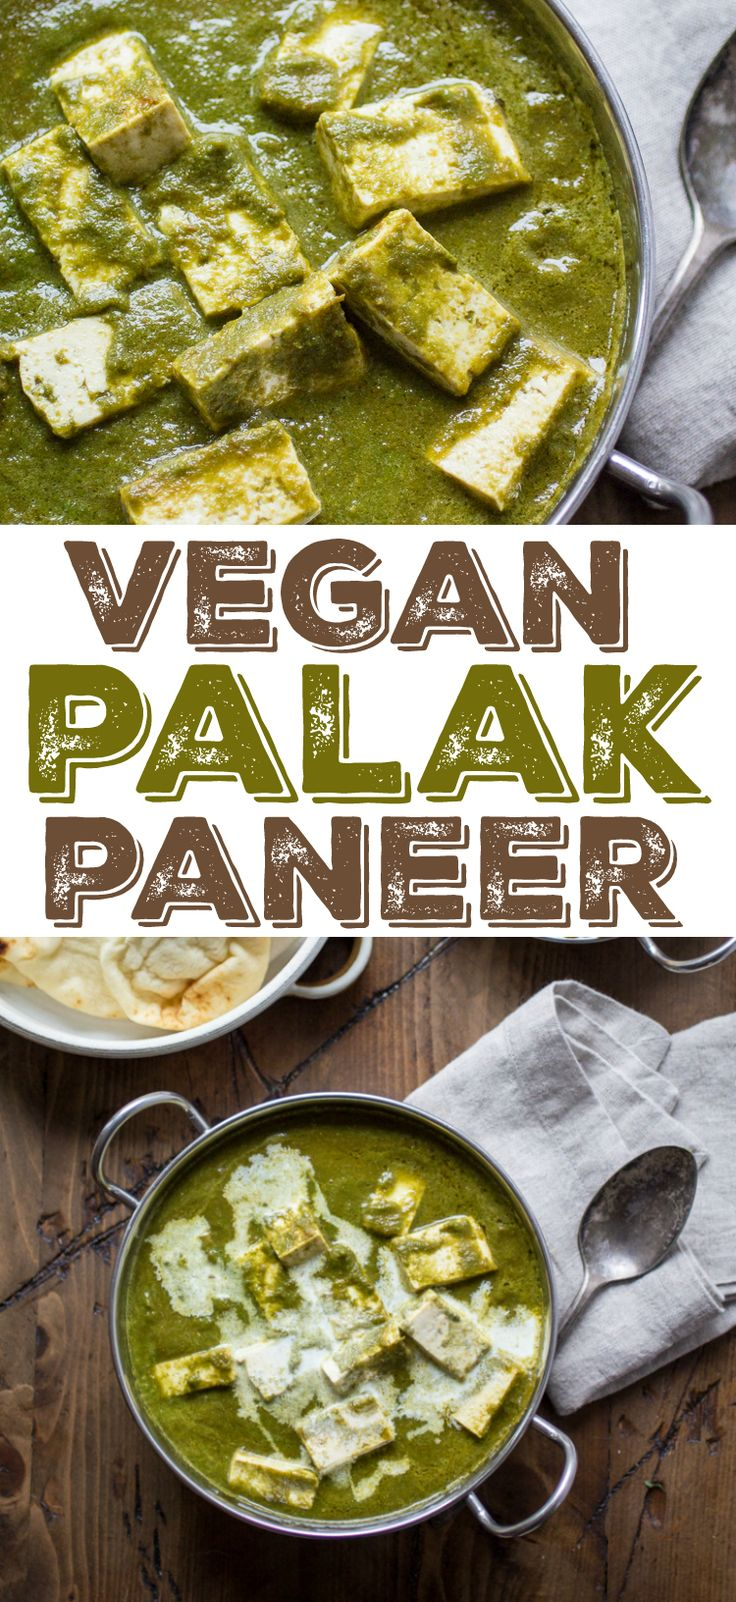 Swapping tofu for cheese is an easy way to turn Palak Paneer into a plant-based favorite.